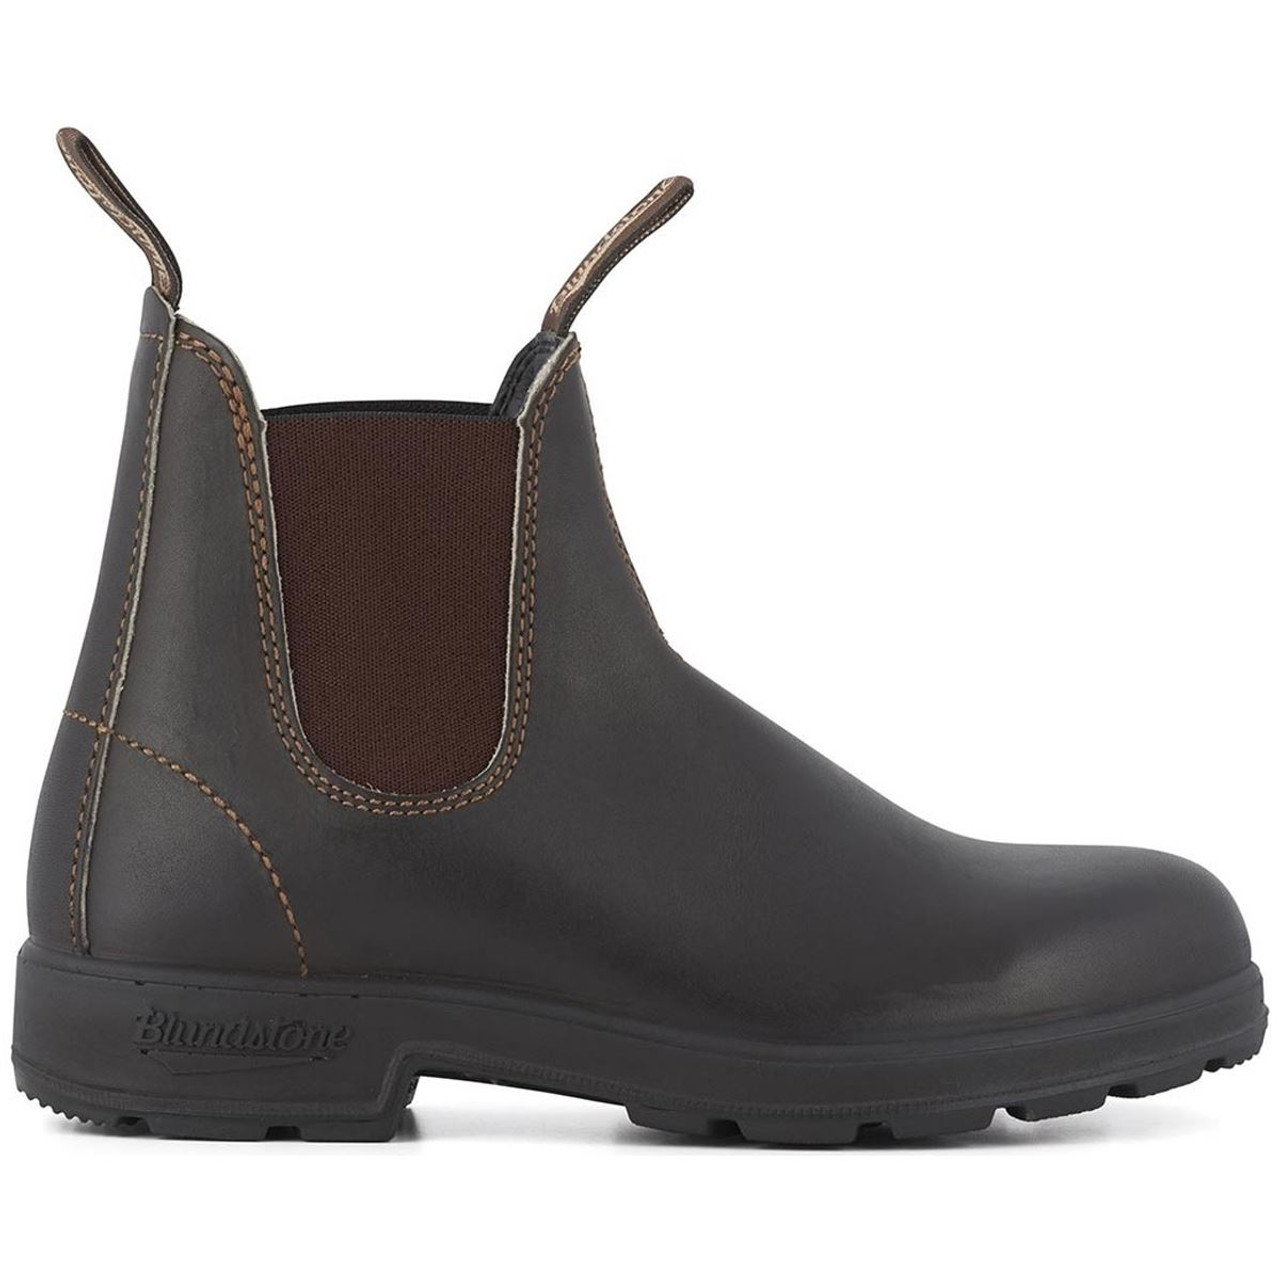 Blundstone Classic 500 Chelsea Boots